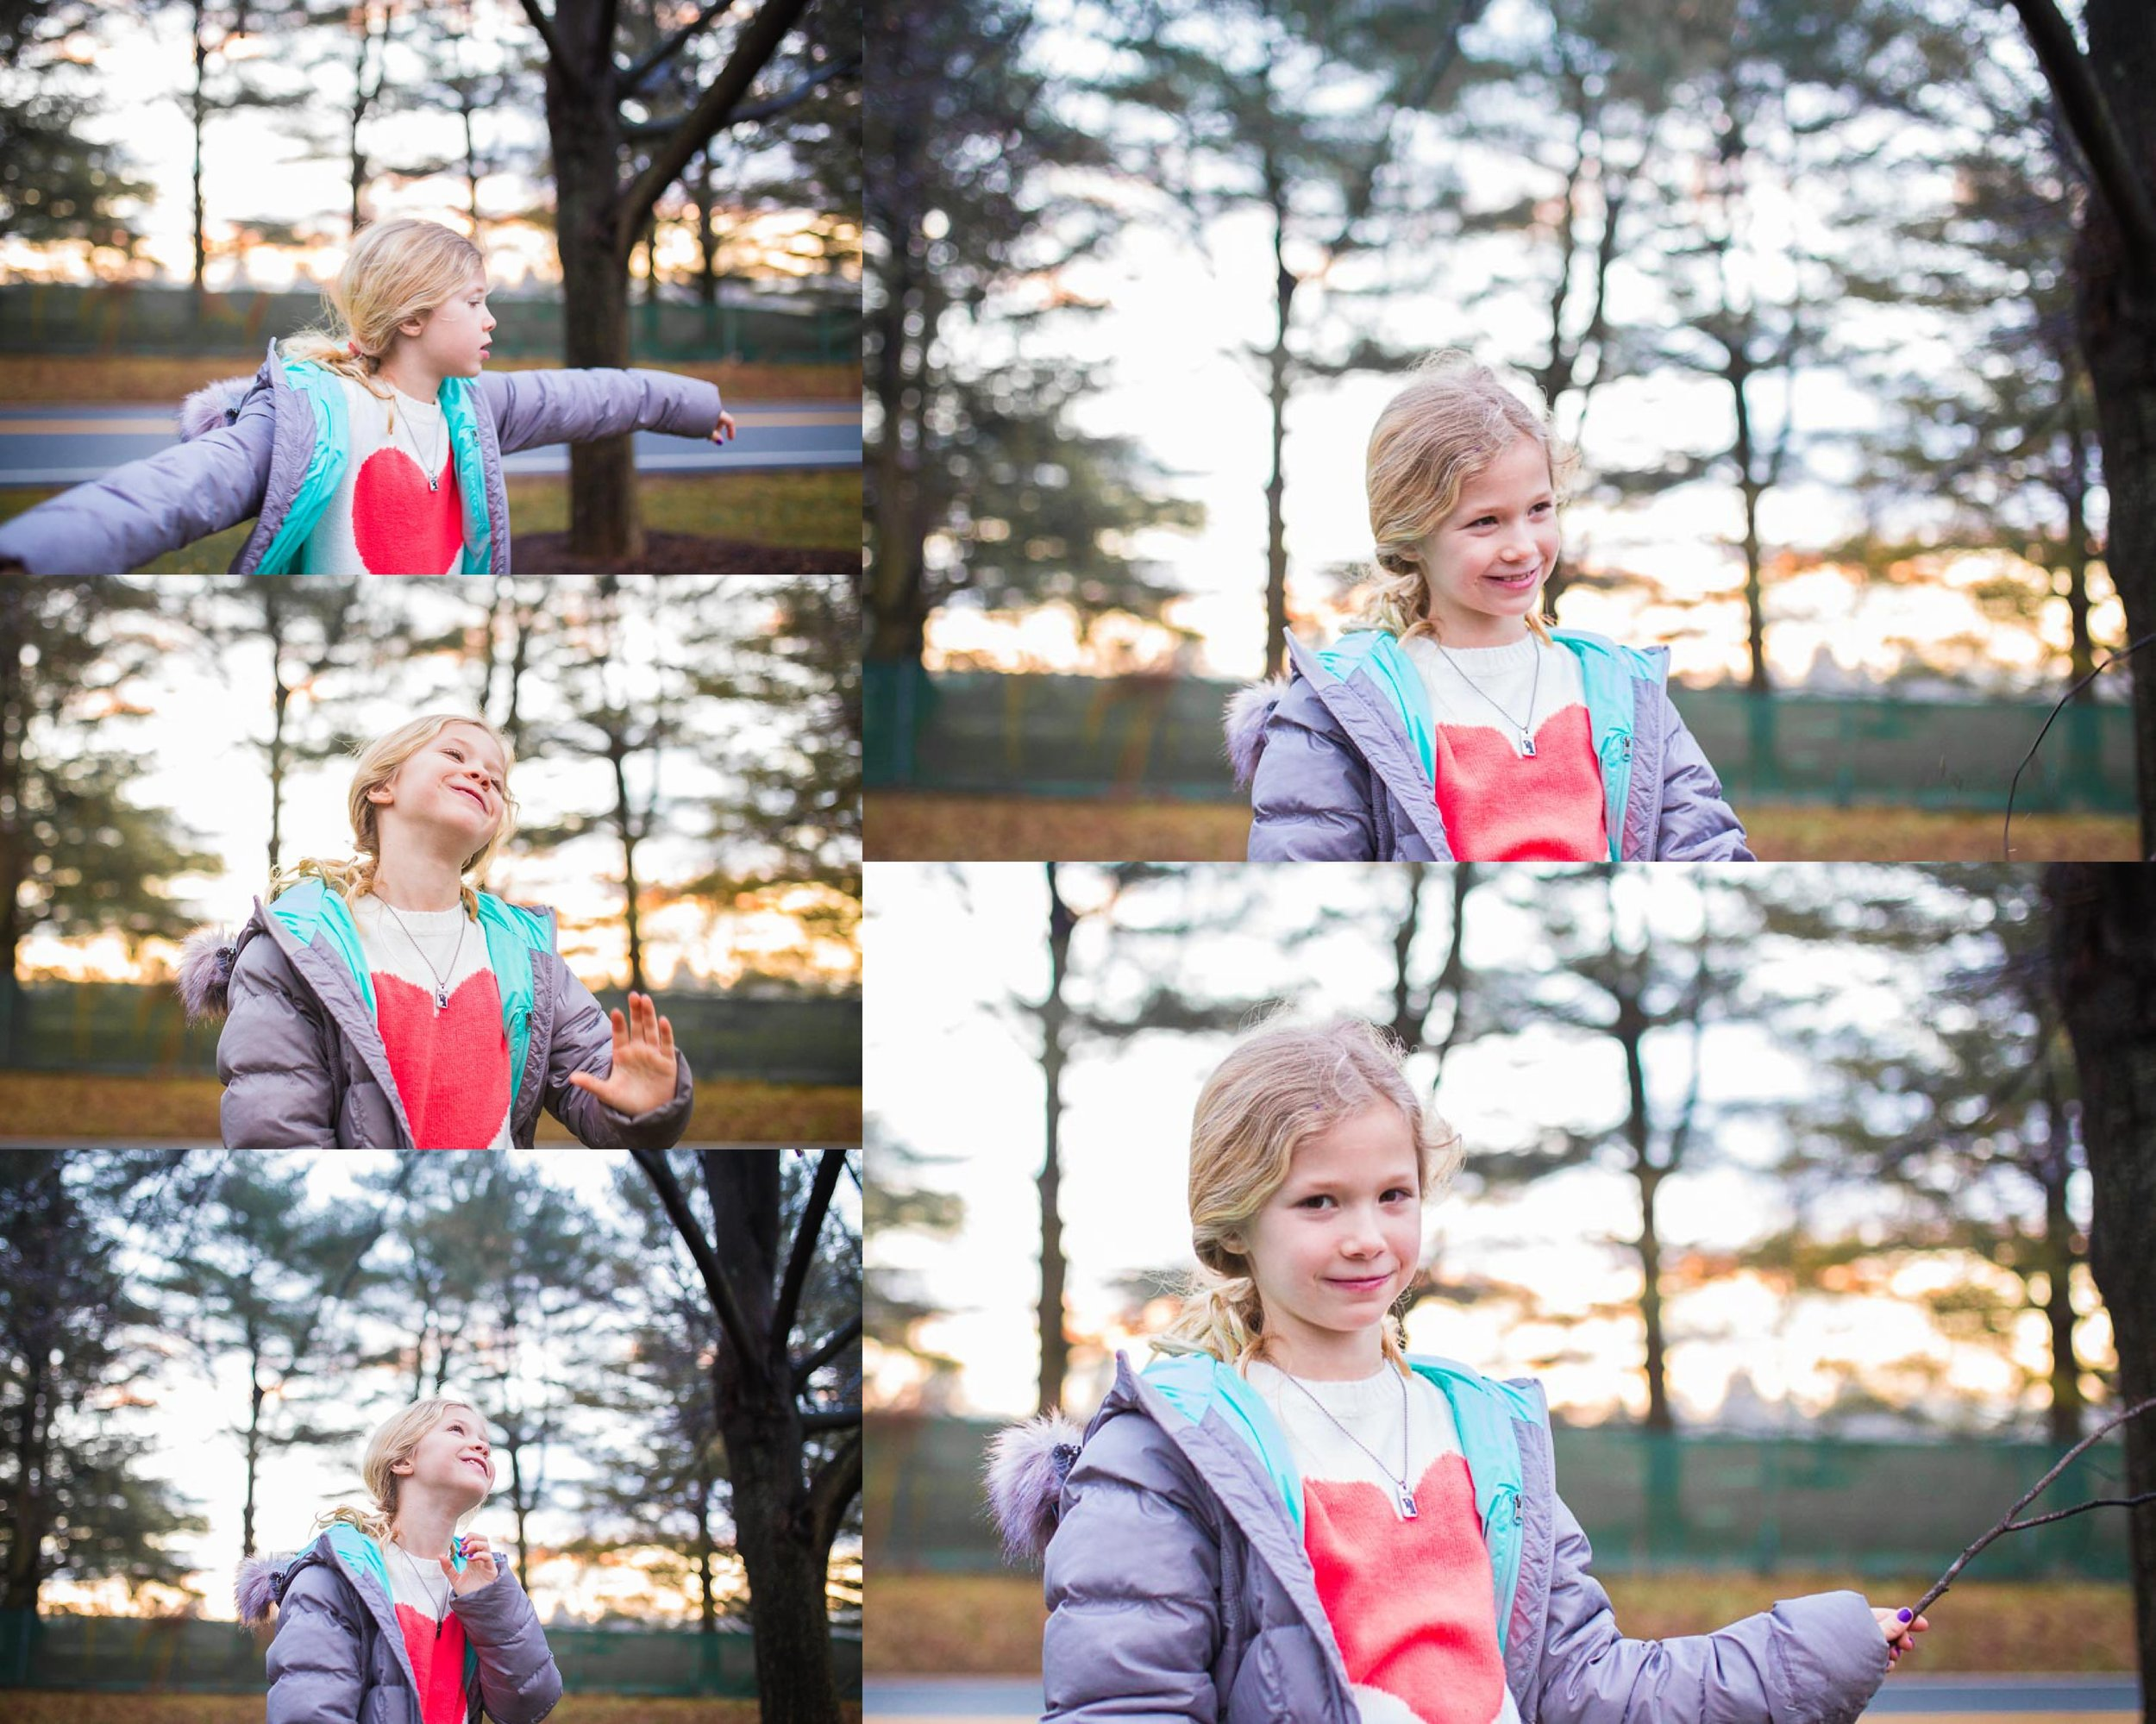 Collage of images of a girl being silly